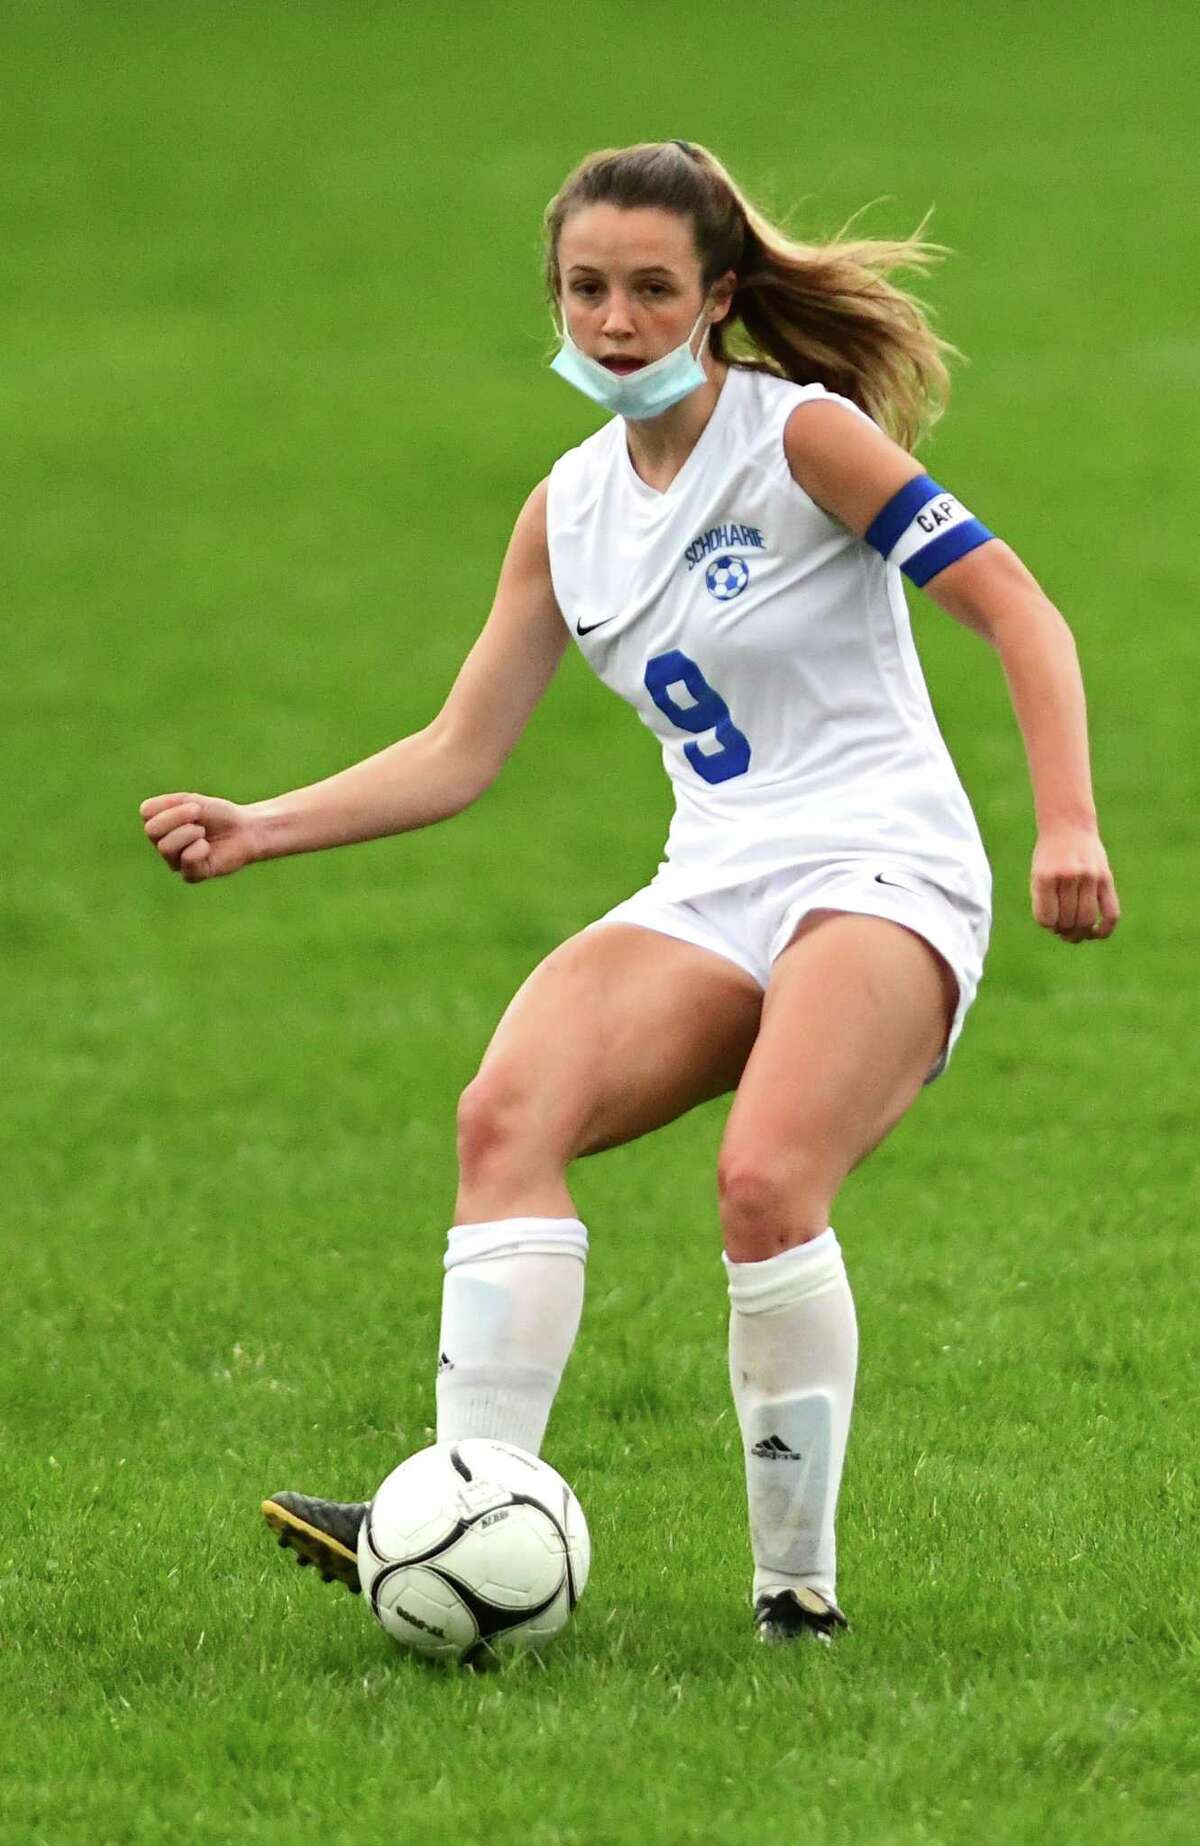 Schoharie's Megan Krohn handles the ball during a soccer game against Duanesburg in April. Krohn was named small-school Athlete of the Year.